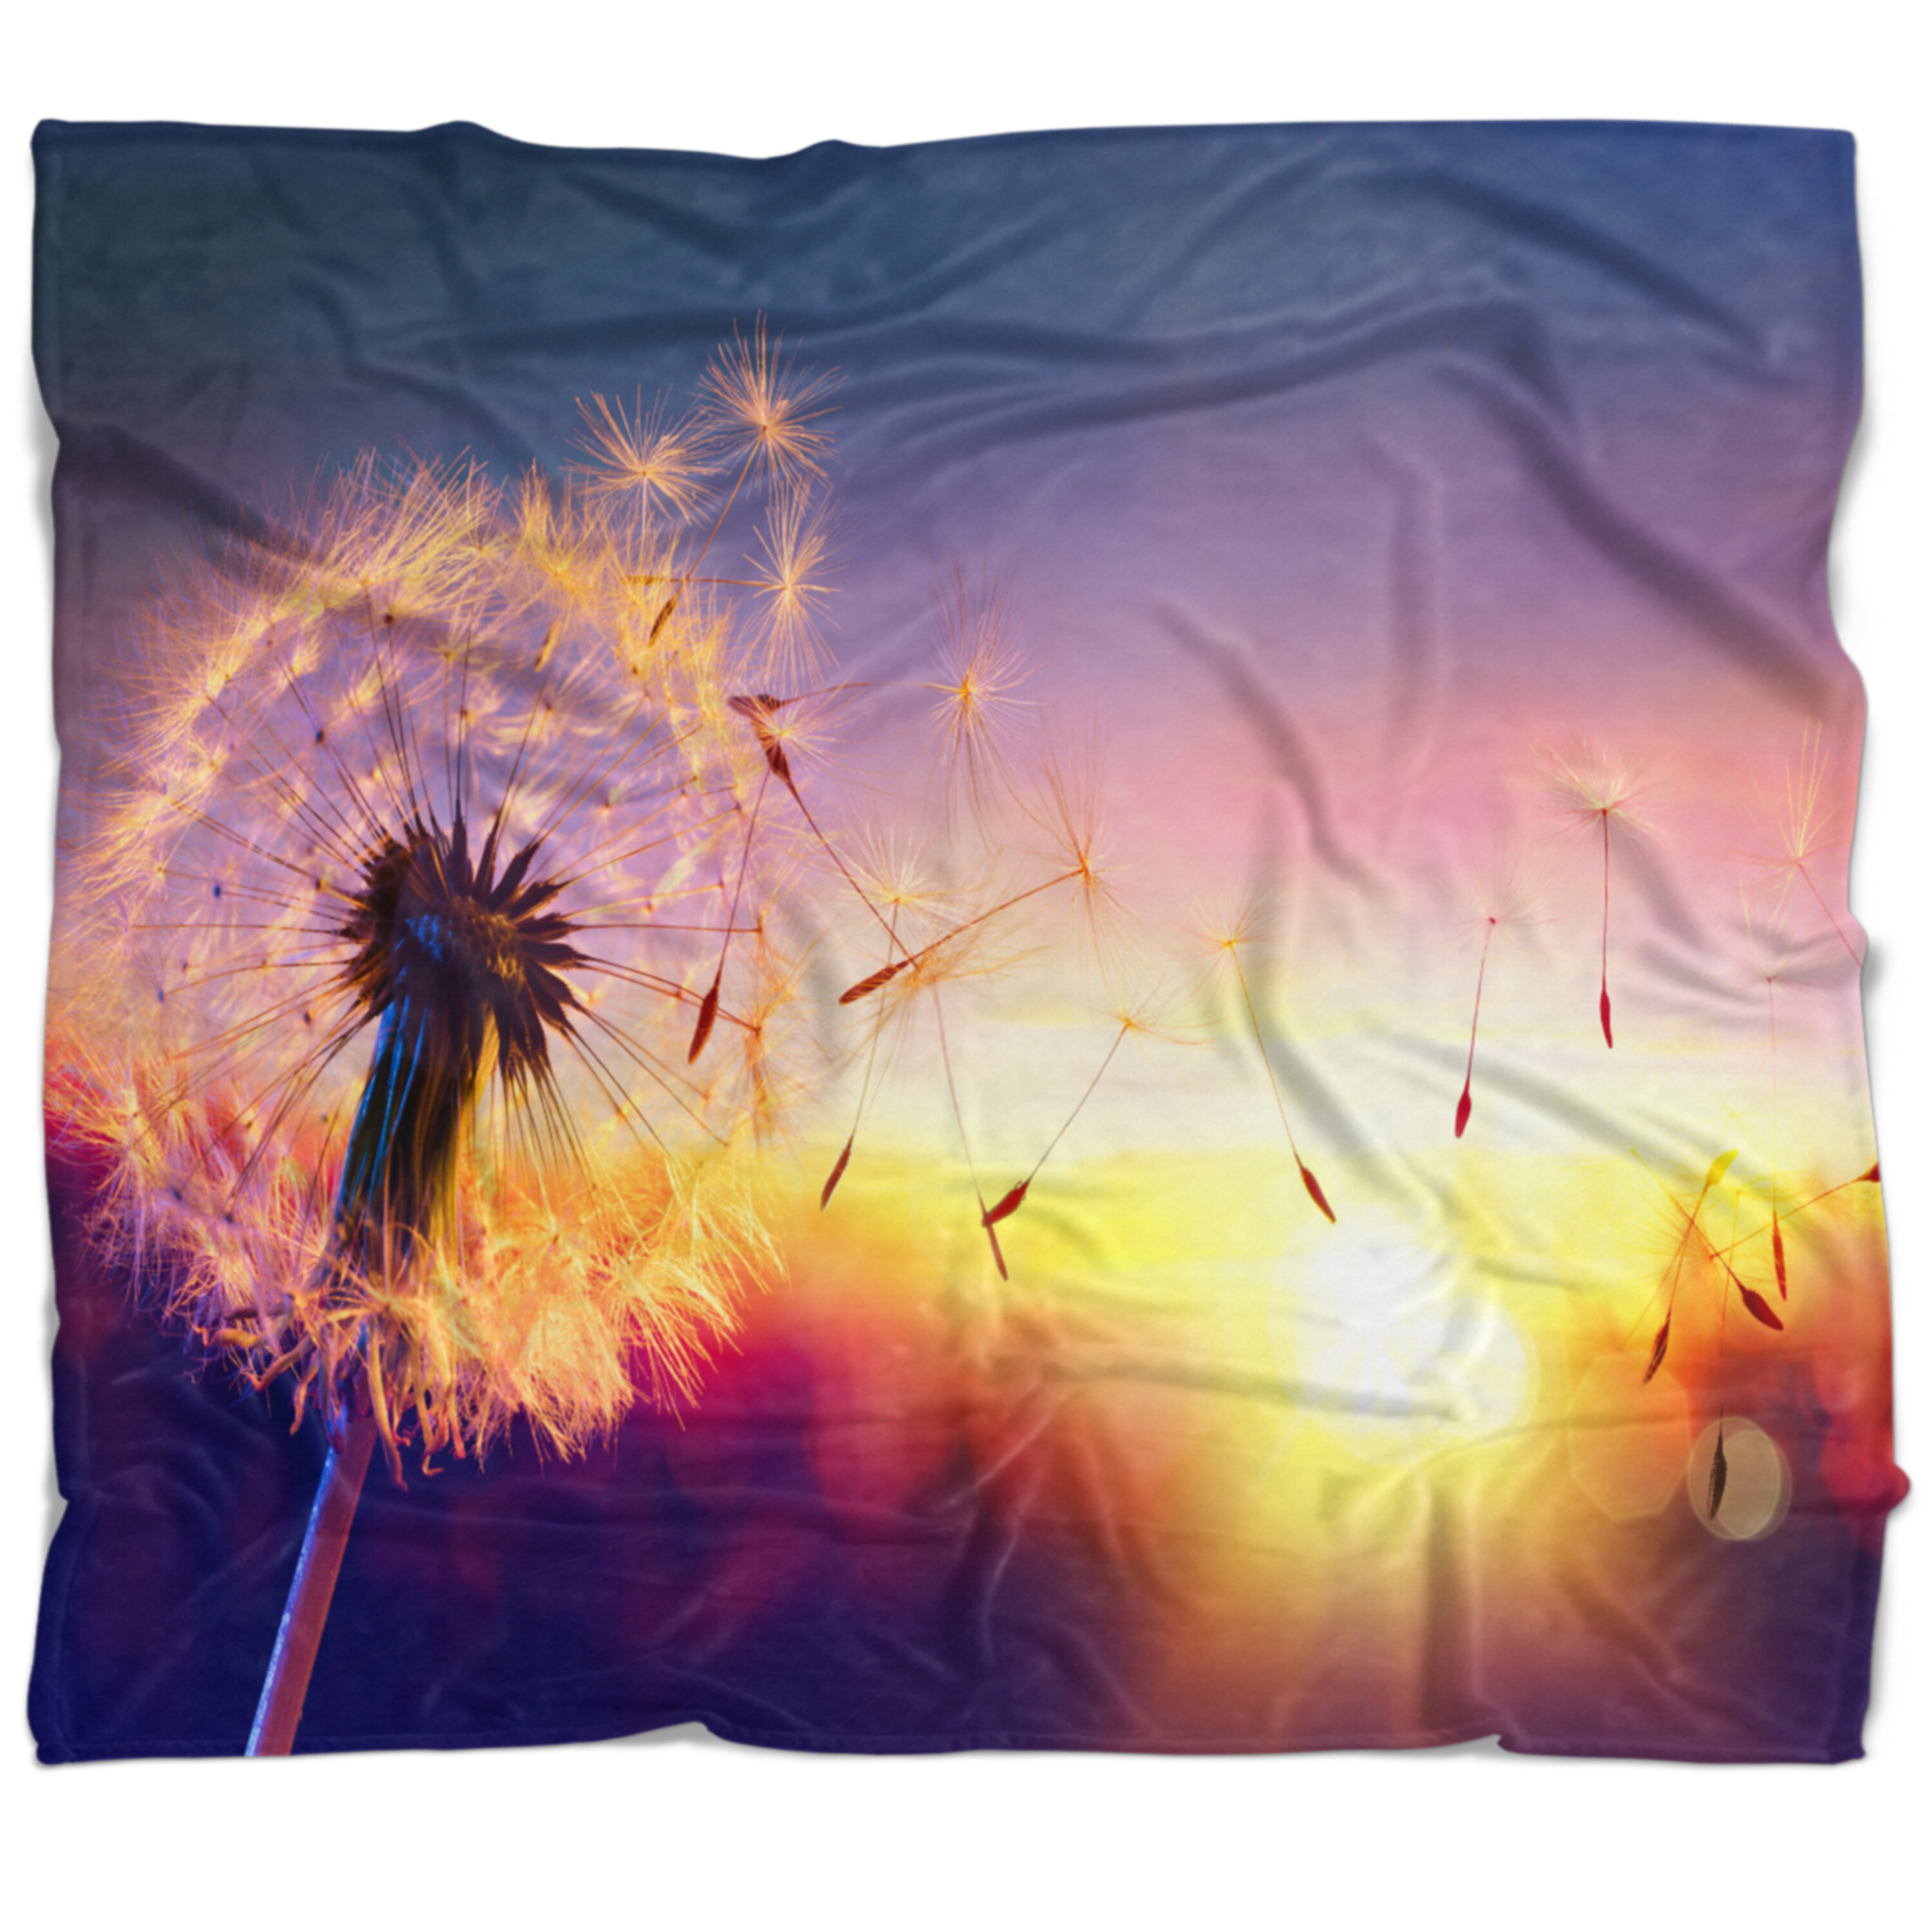 East Urban Home Dandelion At Sunset Freedom To Wish Blanket Wayfair